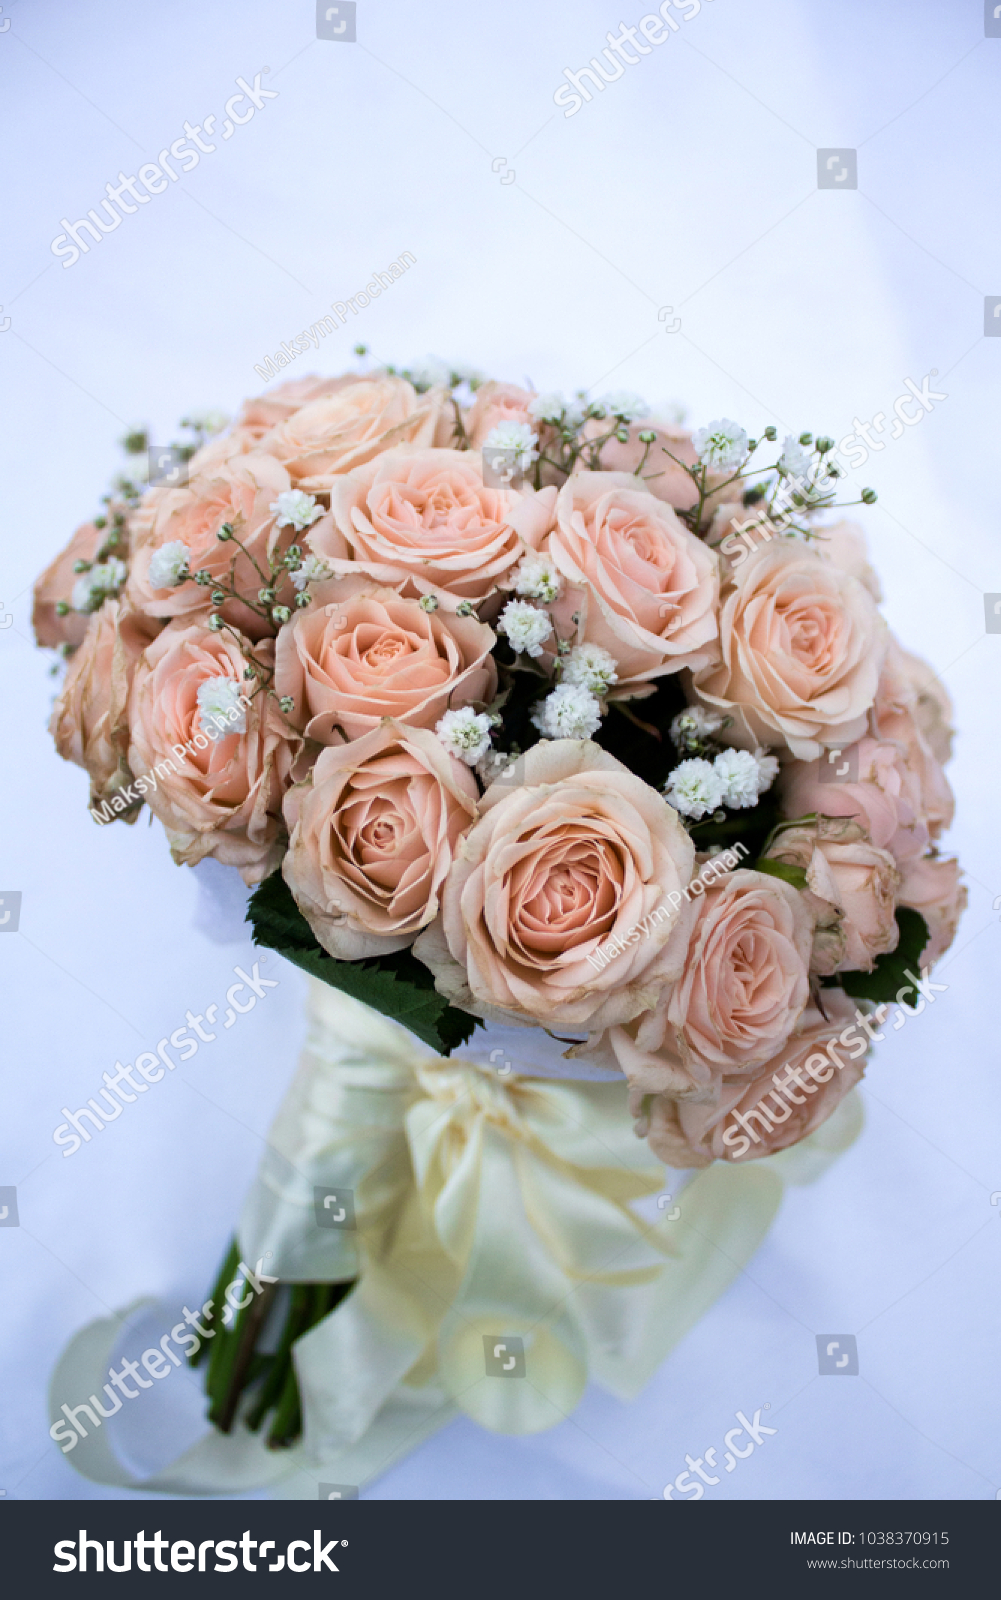 Flower Bouquet Love Day Valentine Marriage Stock Photo (100% Legal ...